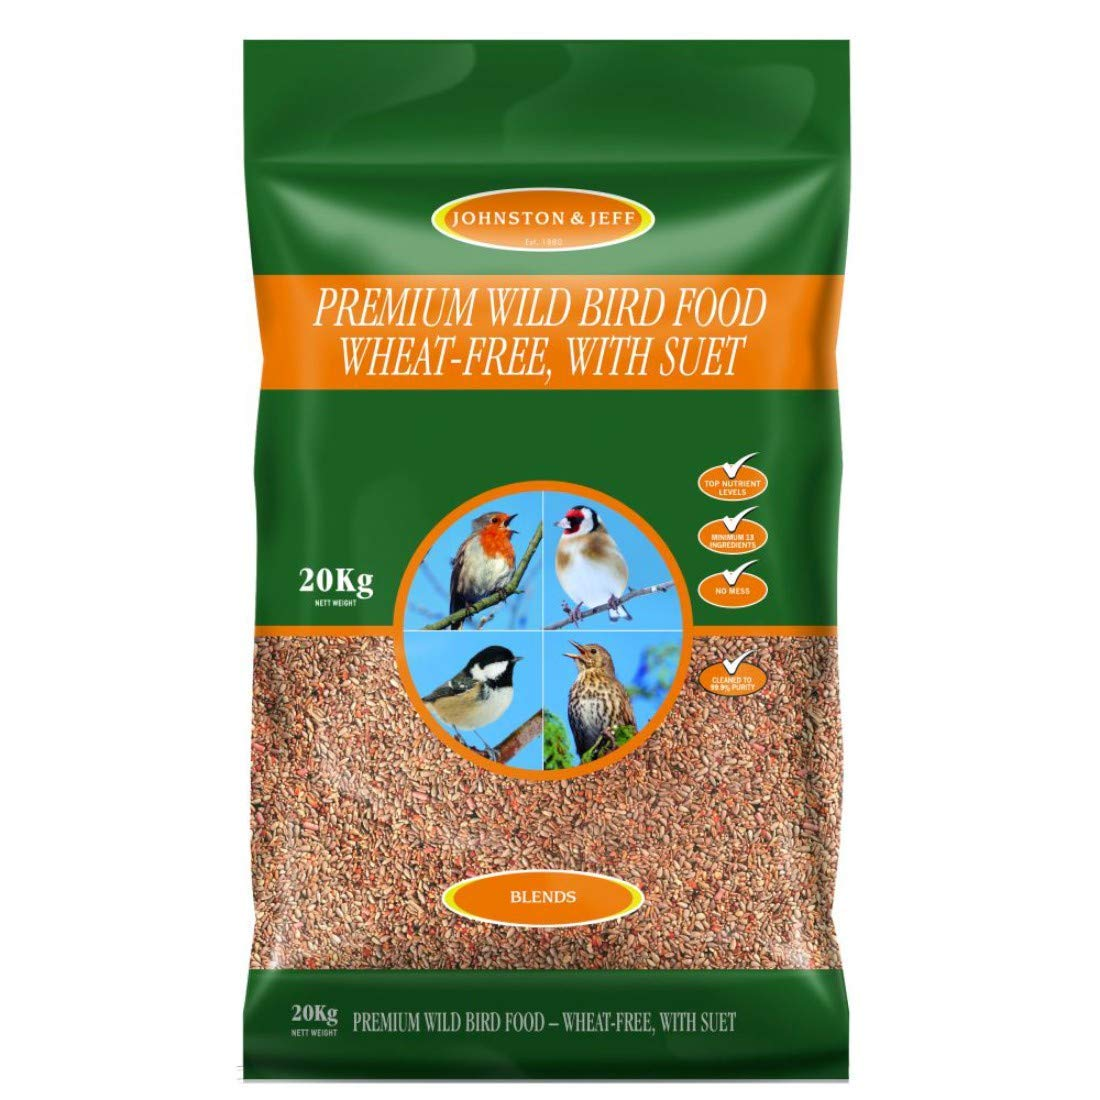 20kg Johnston & Jeff Premium Wild Bird Food, 20 kg